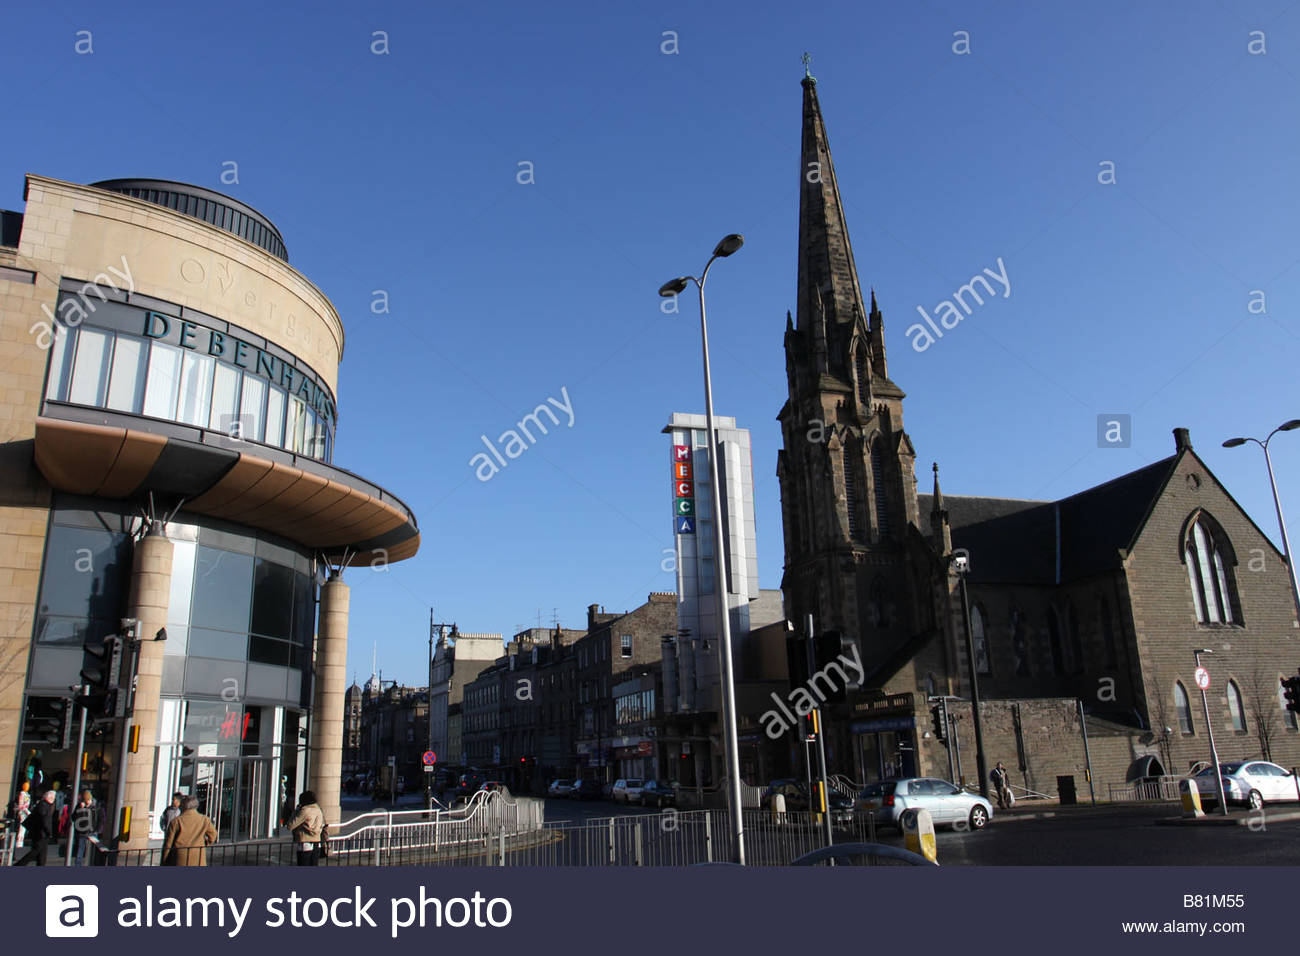 Overgate shopping Centre and Meadowside St Pauls Dundee Scotland  January 2009 - Stock Image